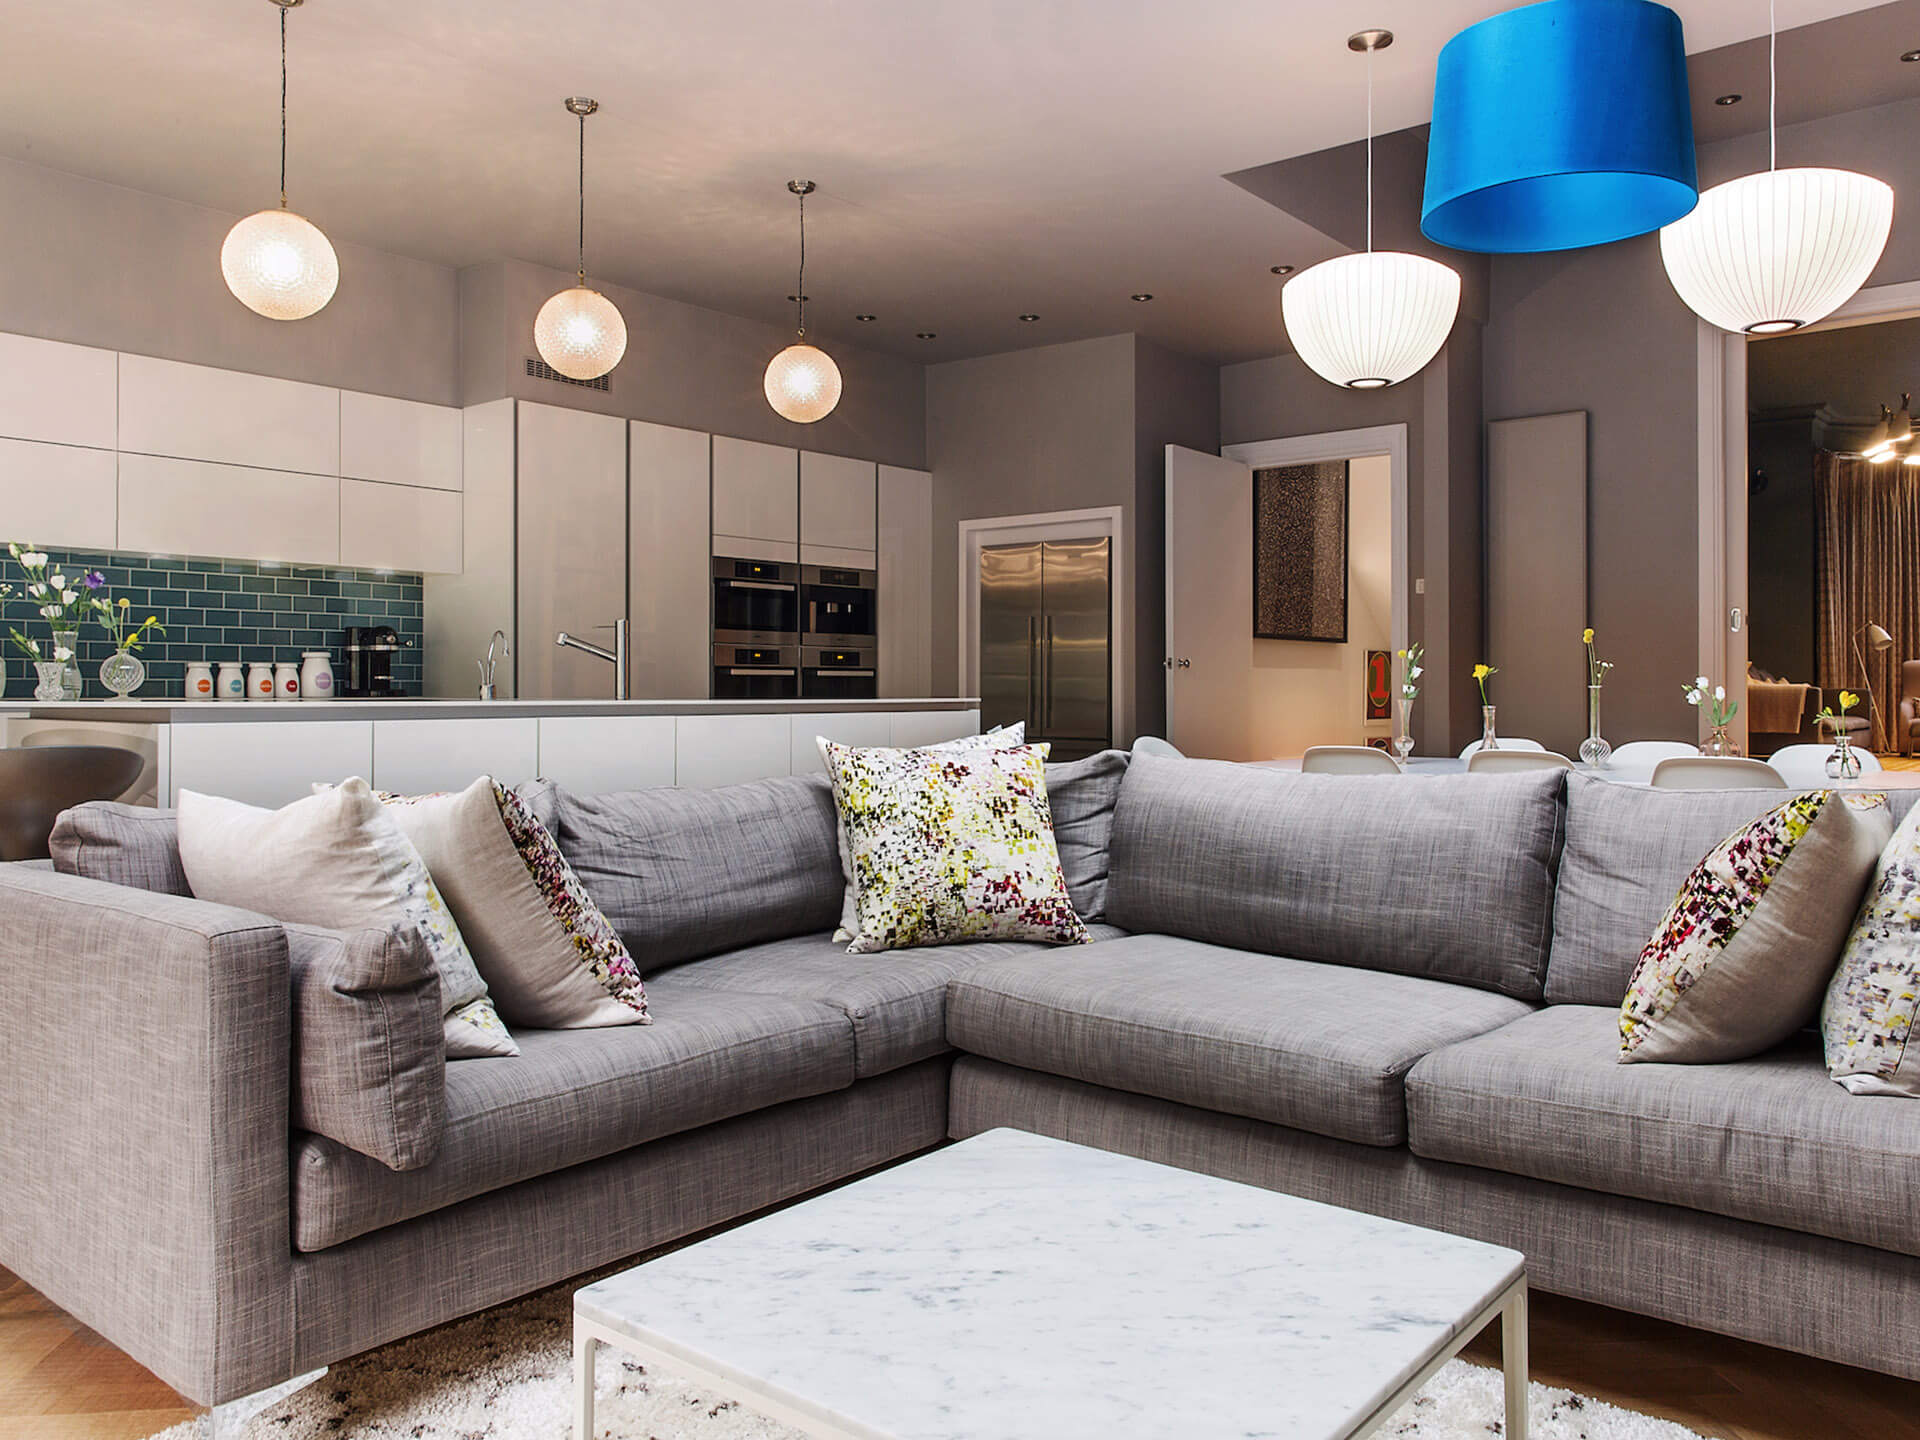 Godrich-Interiors-Routh-Road-SW18-Living-room-sofa-lighting